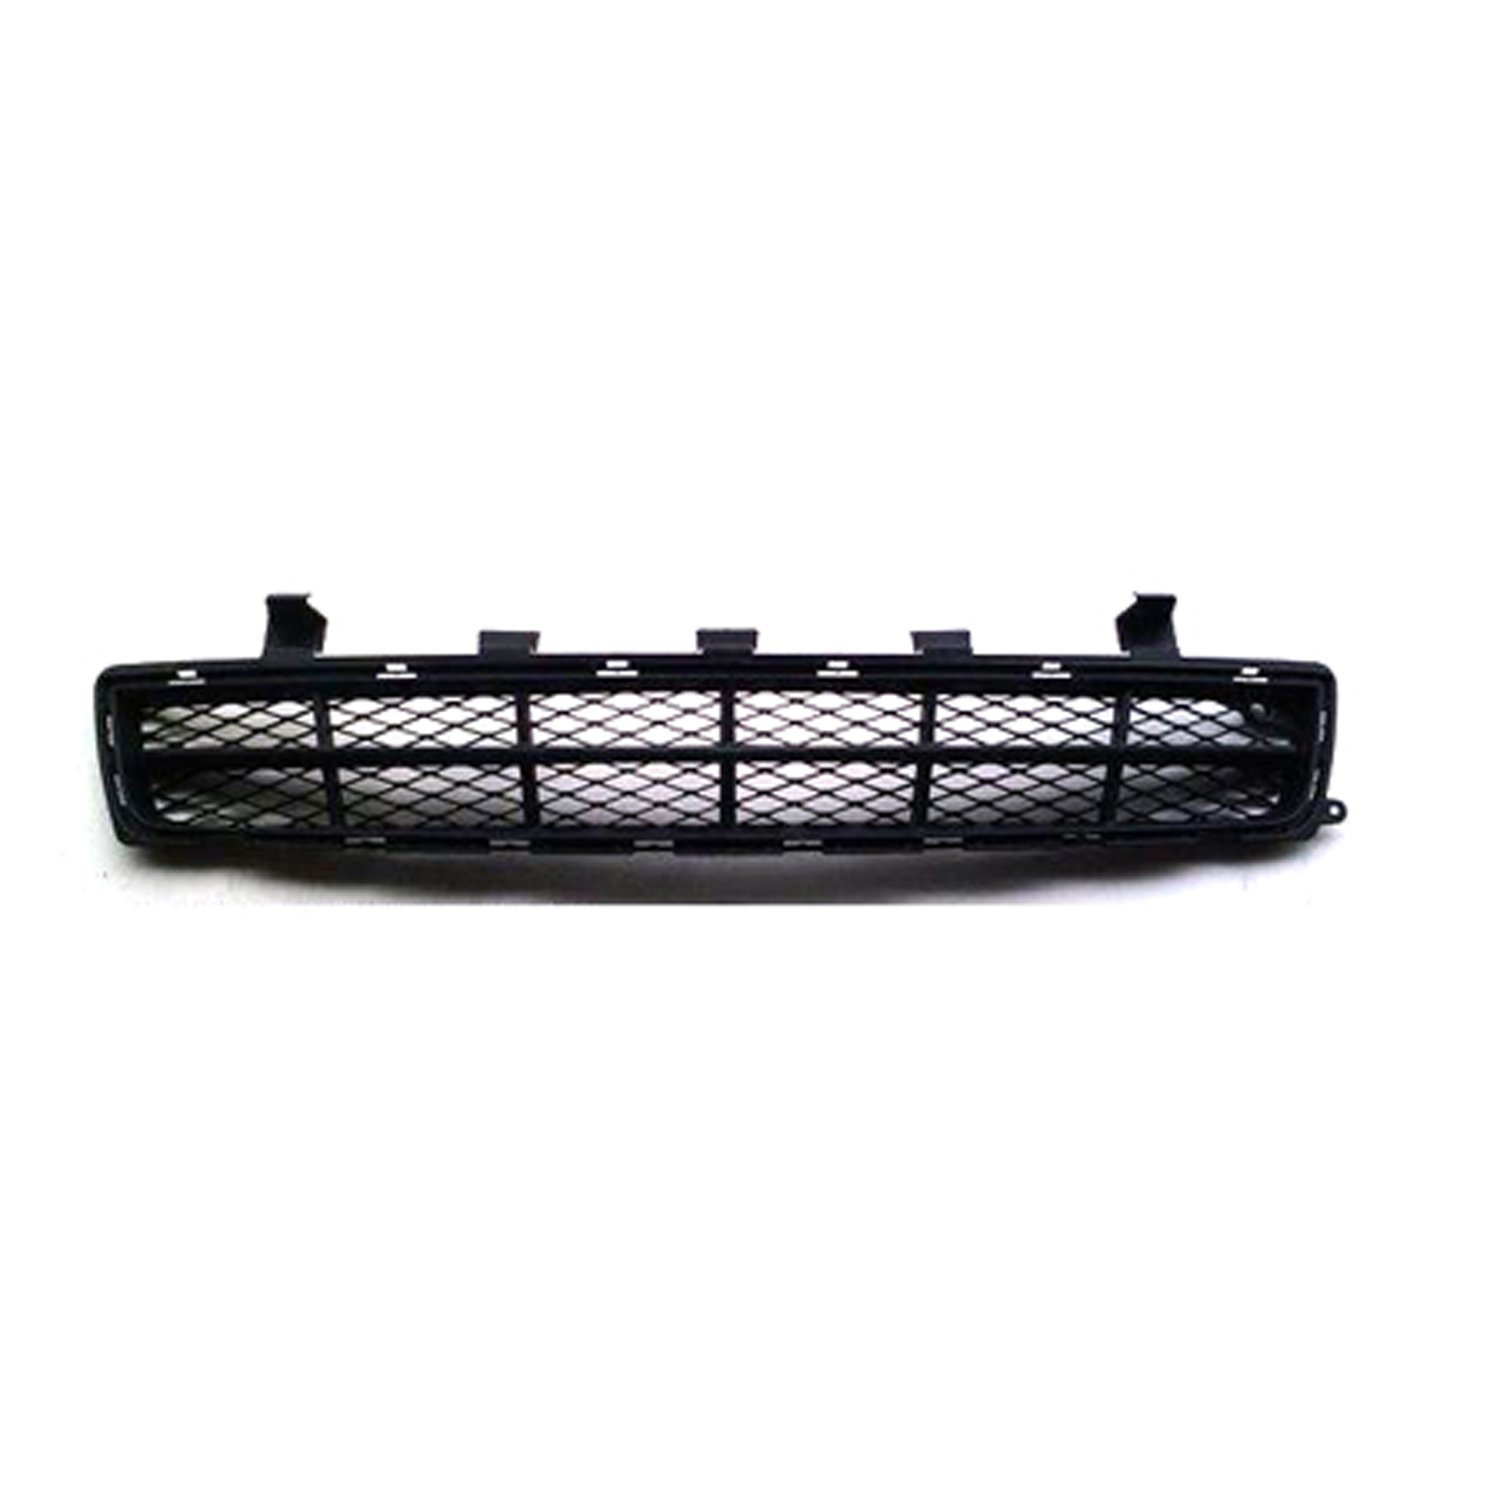 Crash Parts Plus Crash Parts Plus Front Bumper Grille for Buick Allure, LaCrosse